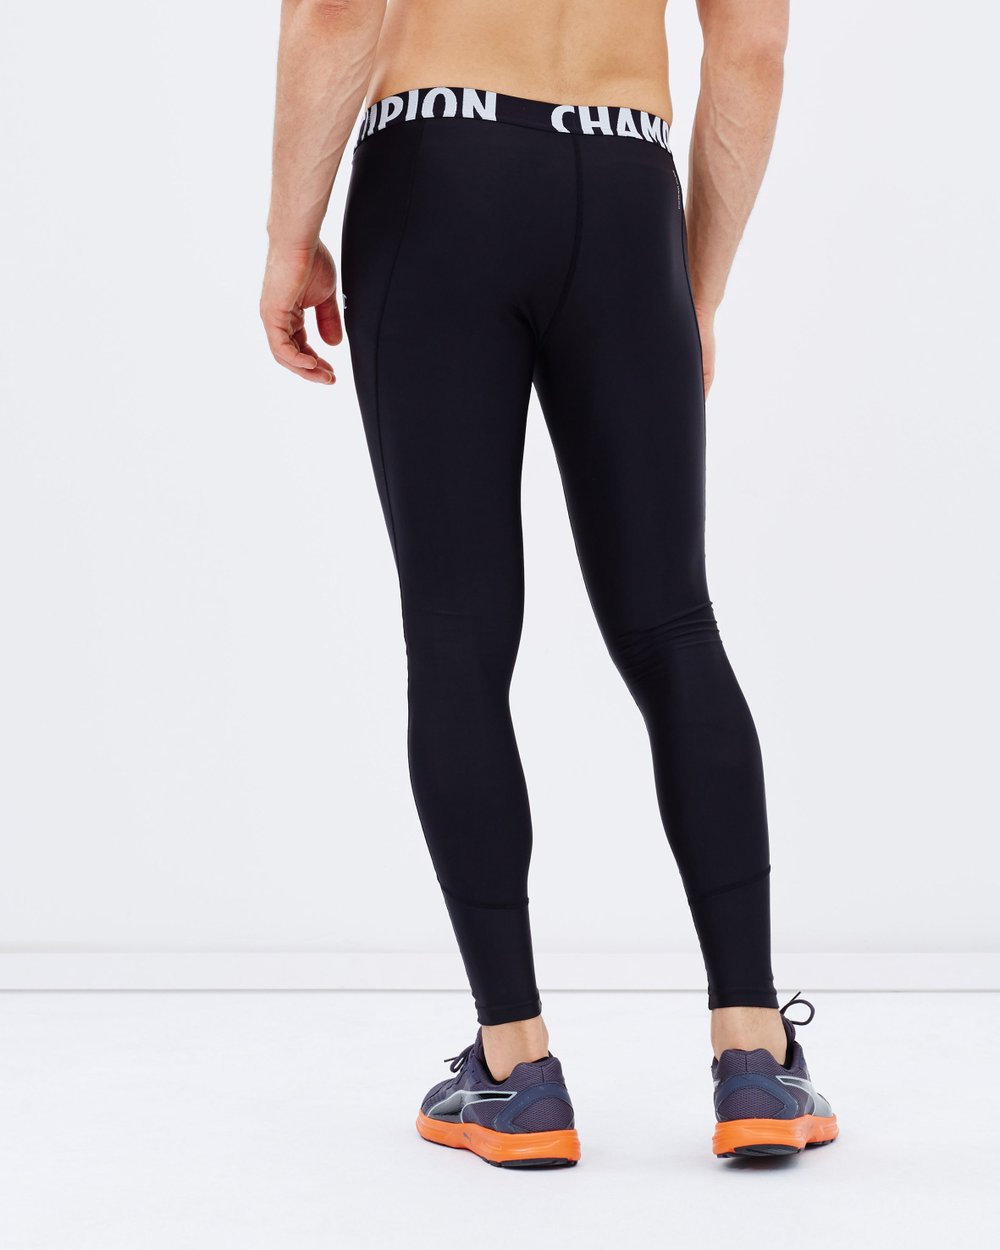 a746e33ad3af5 Men's Performax Full-Length Tights by Champion Online | THE ICONIC |  Australia